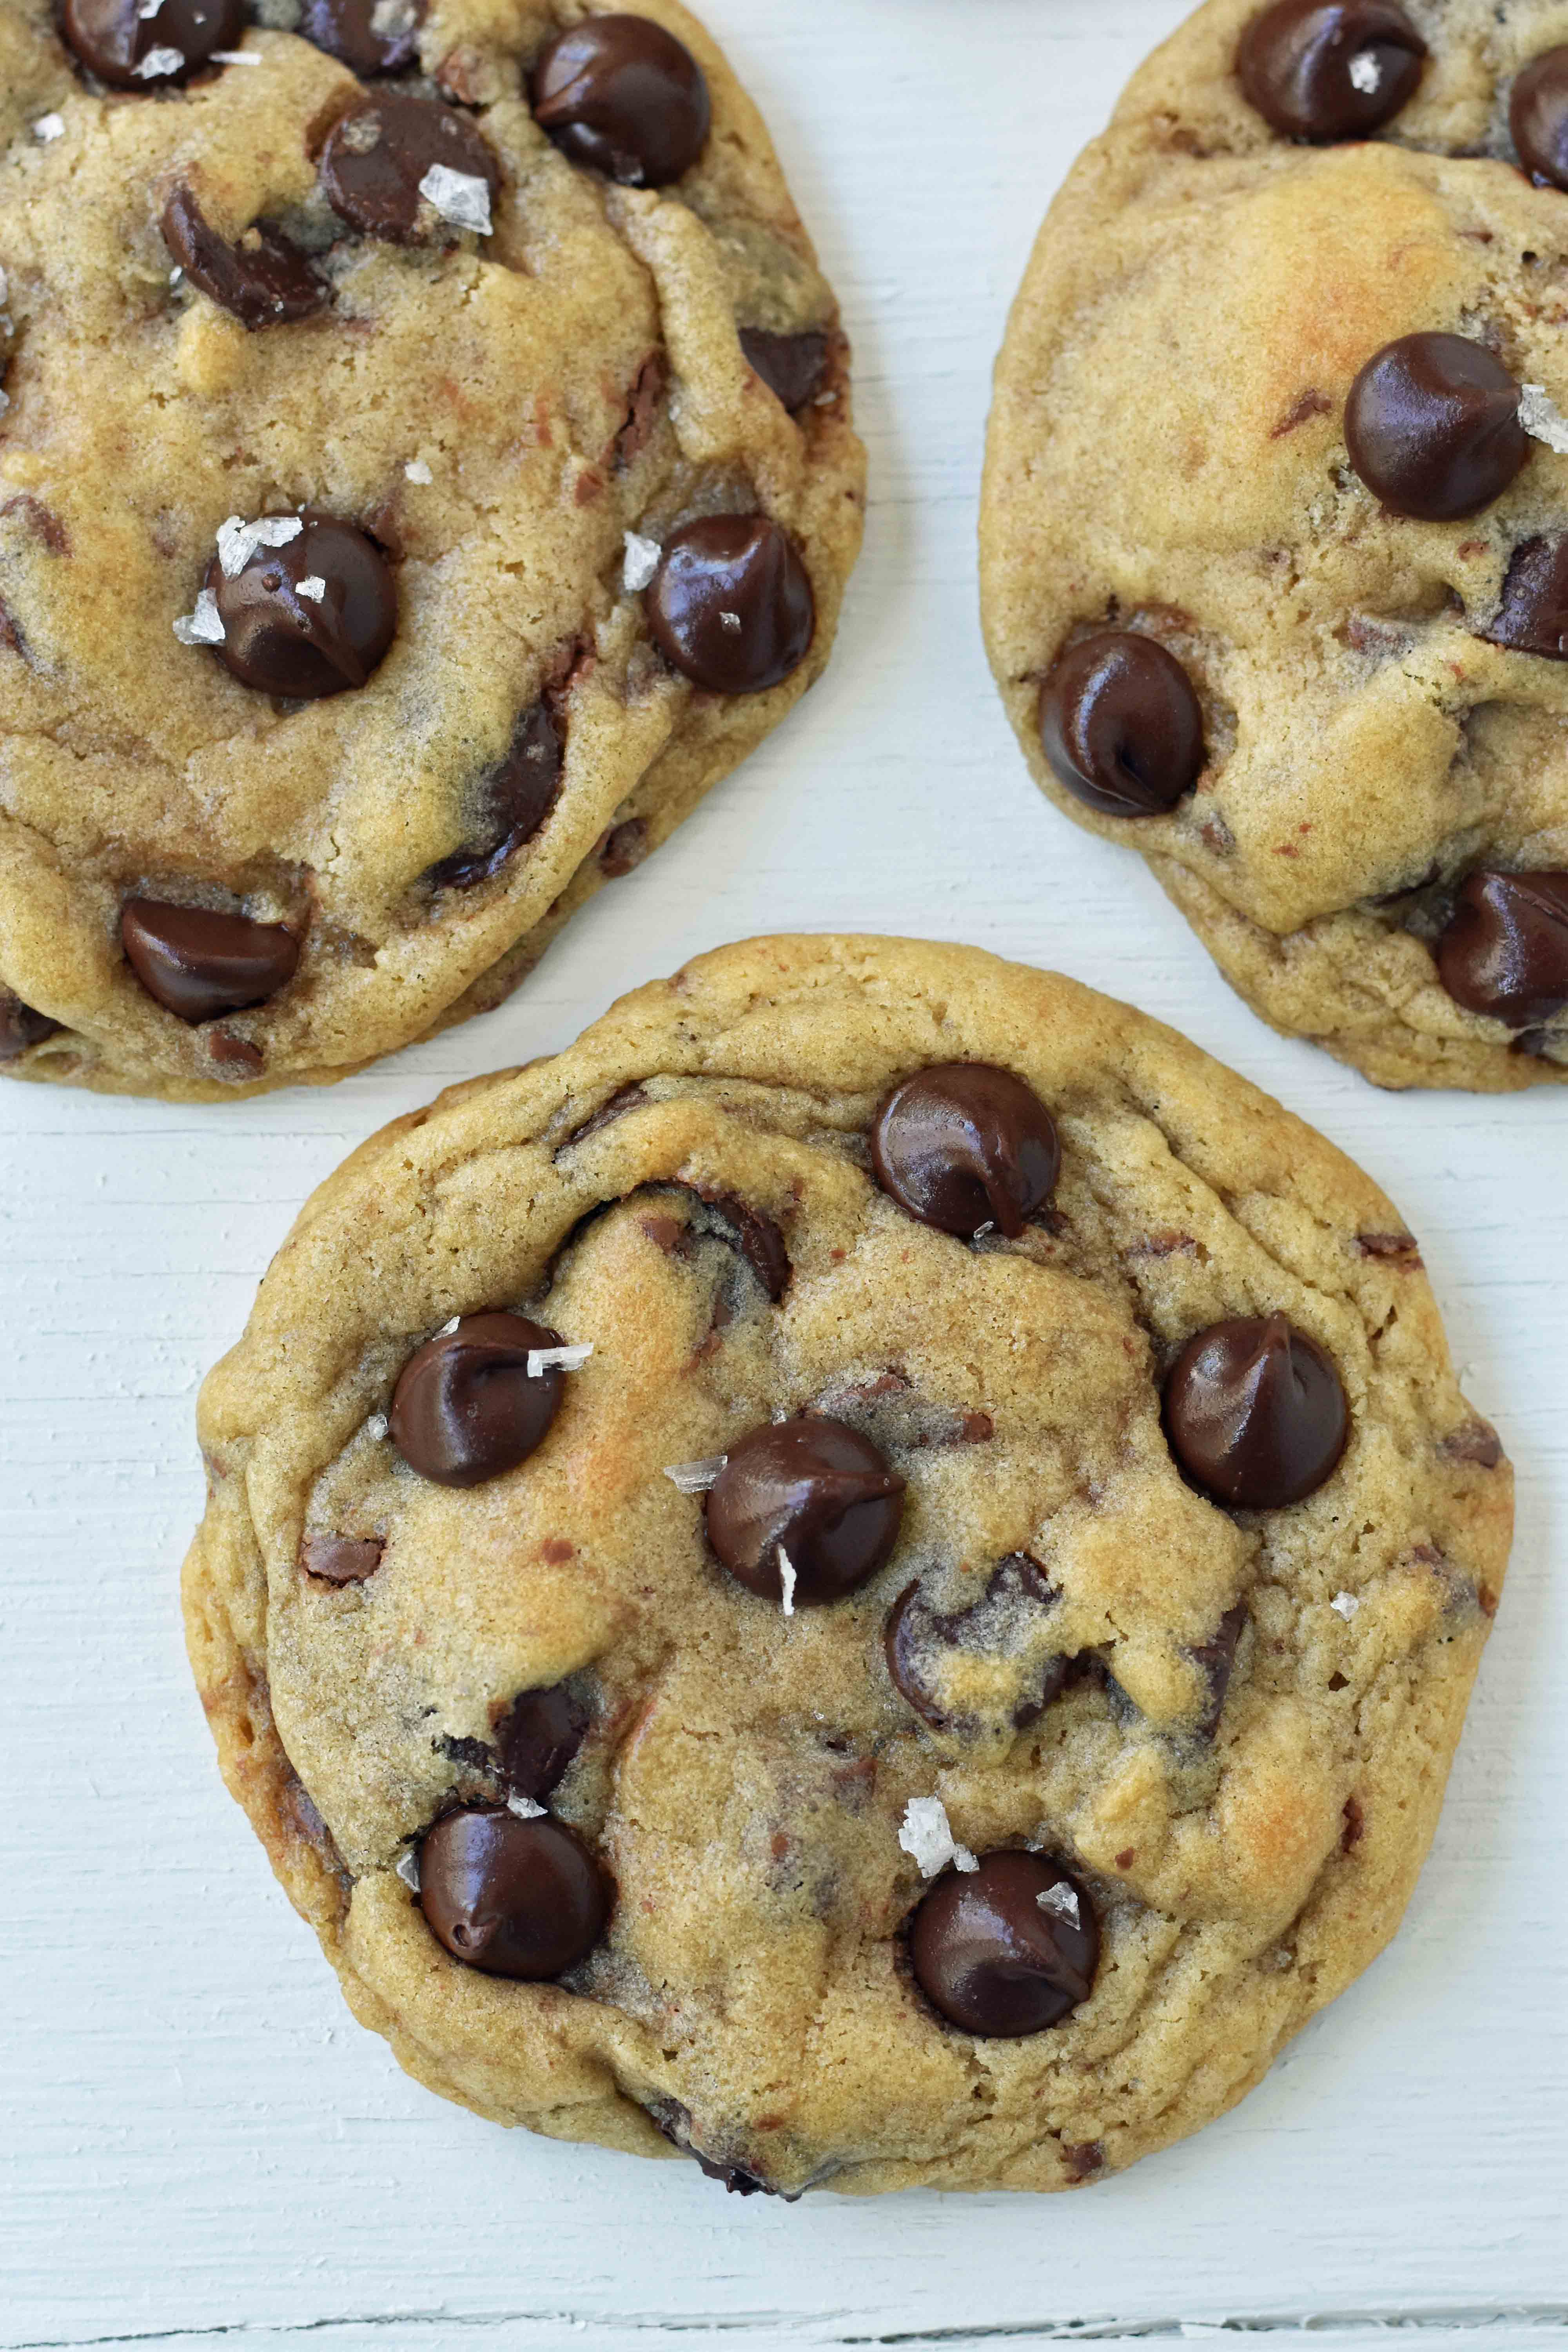 Charmina's Chocolate Chip Cookies are the classic chocolate chip cookie recipe with melted and softened butter and both semi-sweet and milk chocolate chips. www.modernhoney.com